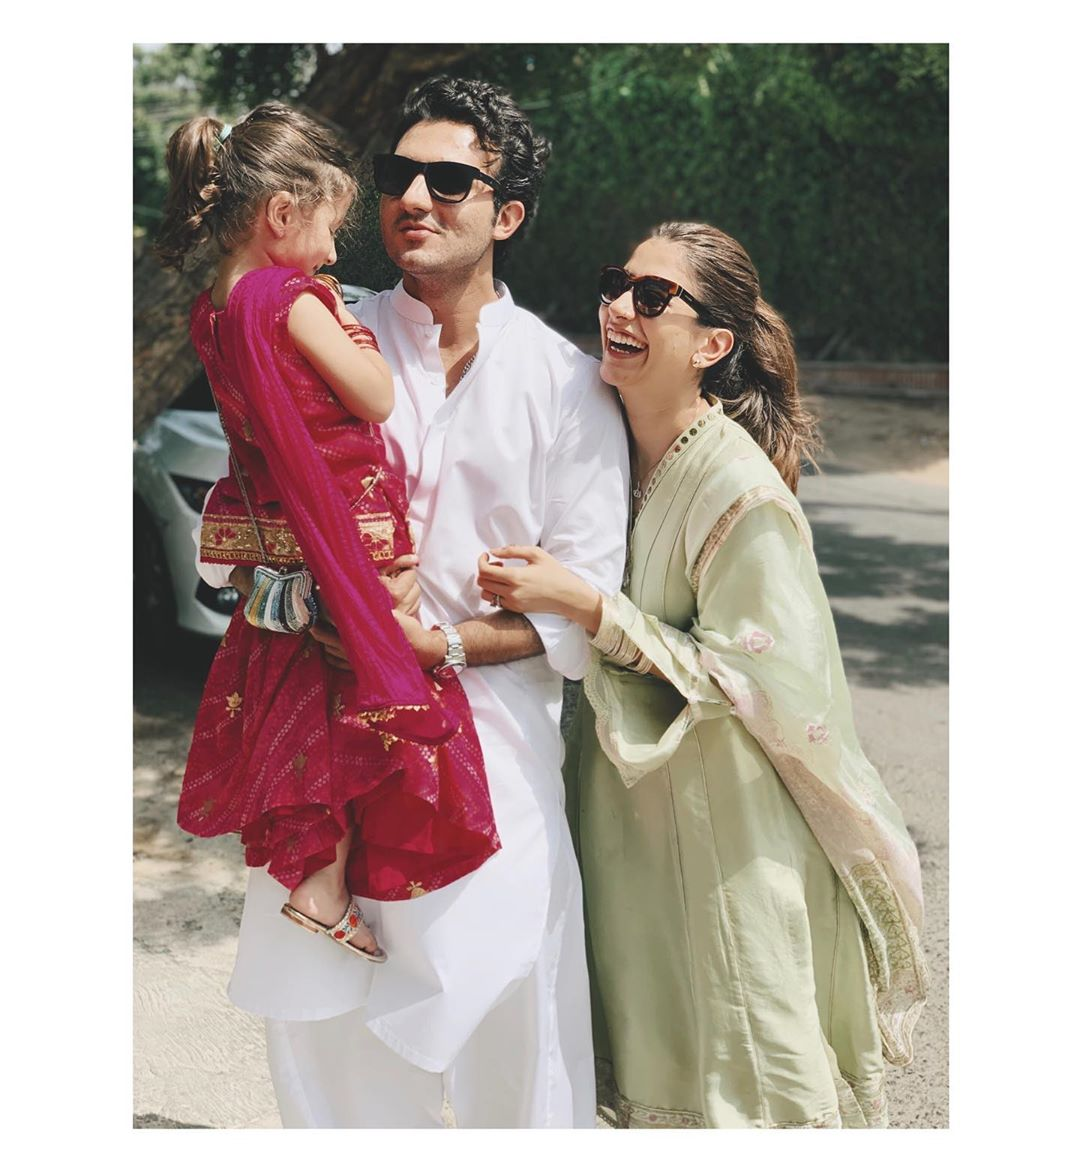 Awesome Eid Photos of Syra and Shahroze with Family